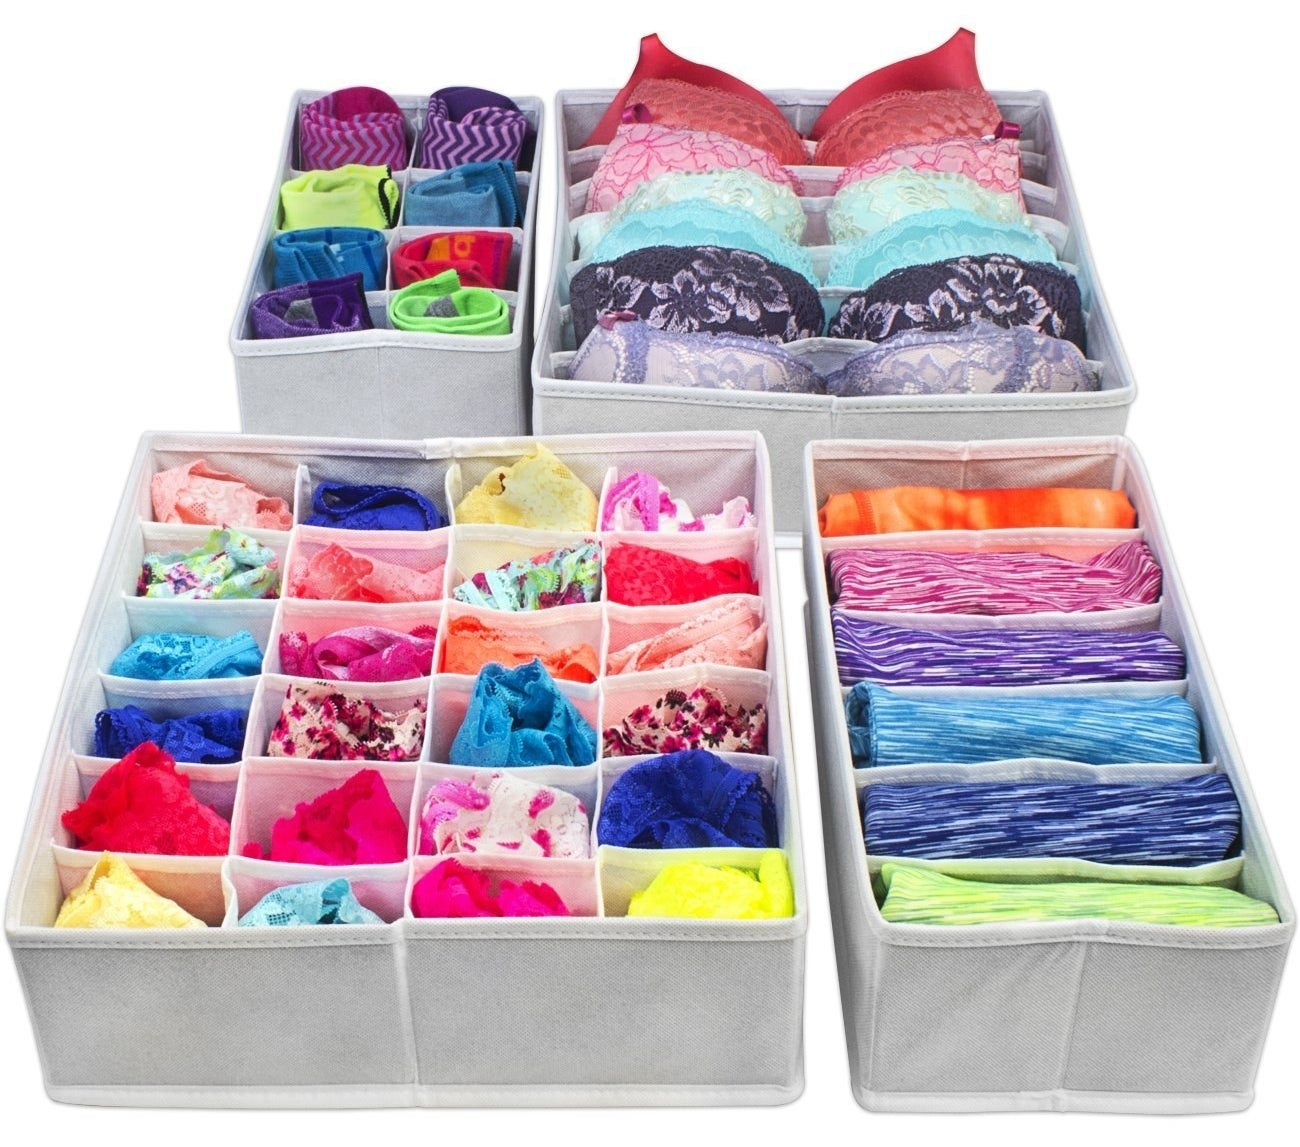 """Promising Review: """"These foldable draw dividers are great when you want to get your draws organized. I had all my garments all over the place in my drawer. This is so easy. You just open the drawer and find what you want. It's also so easy to take your garments out of the dryer and just stick them in the little square box! So fast and easy."""" —Demery DonovanGet it on Amazon for $10.99."""